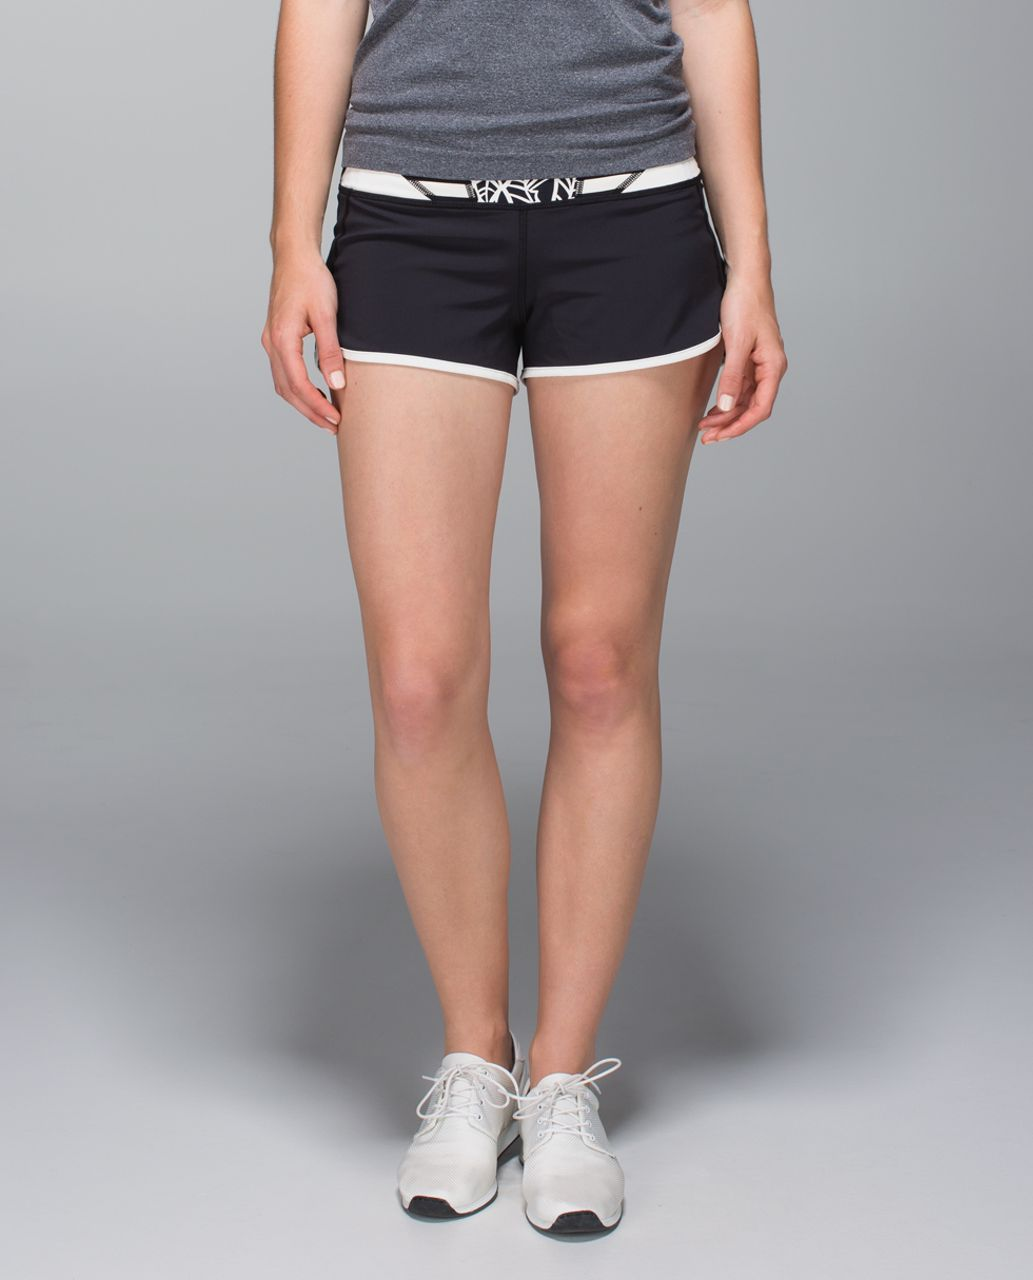 Lululemon Run:  Speed Short *4-way Stretch - Black / Angel Wing / Su14 Quilt 35